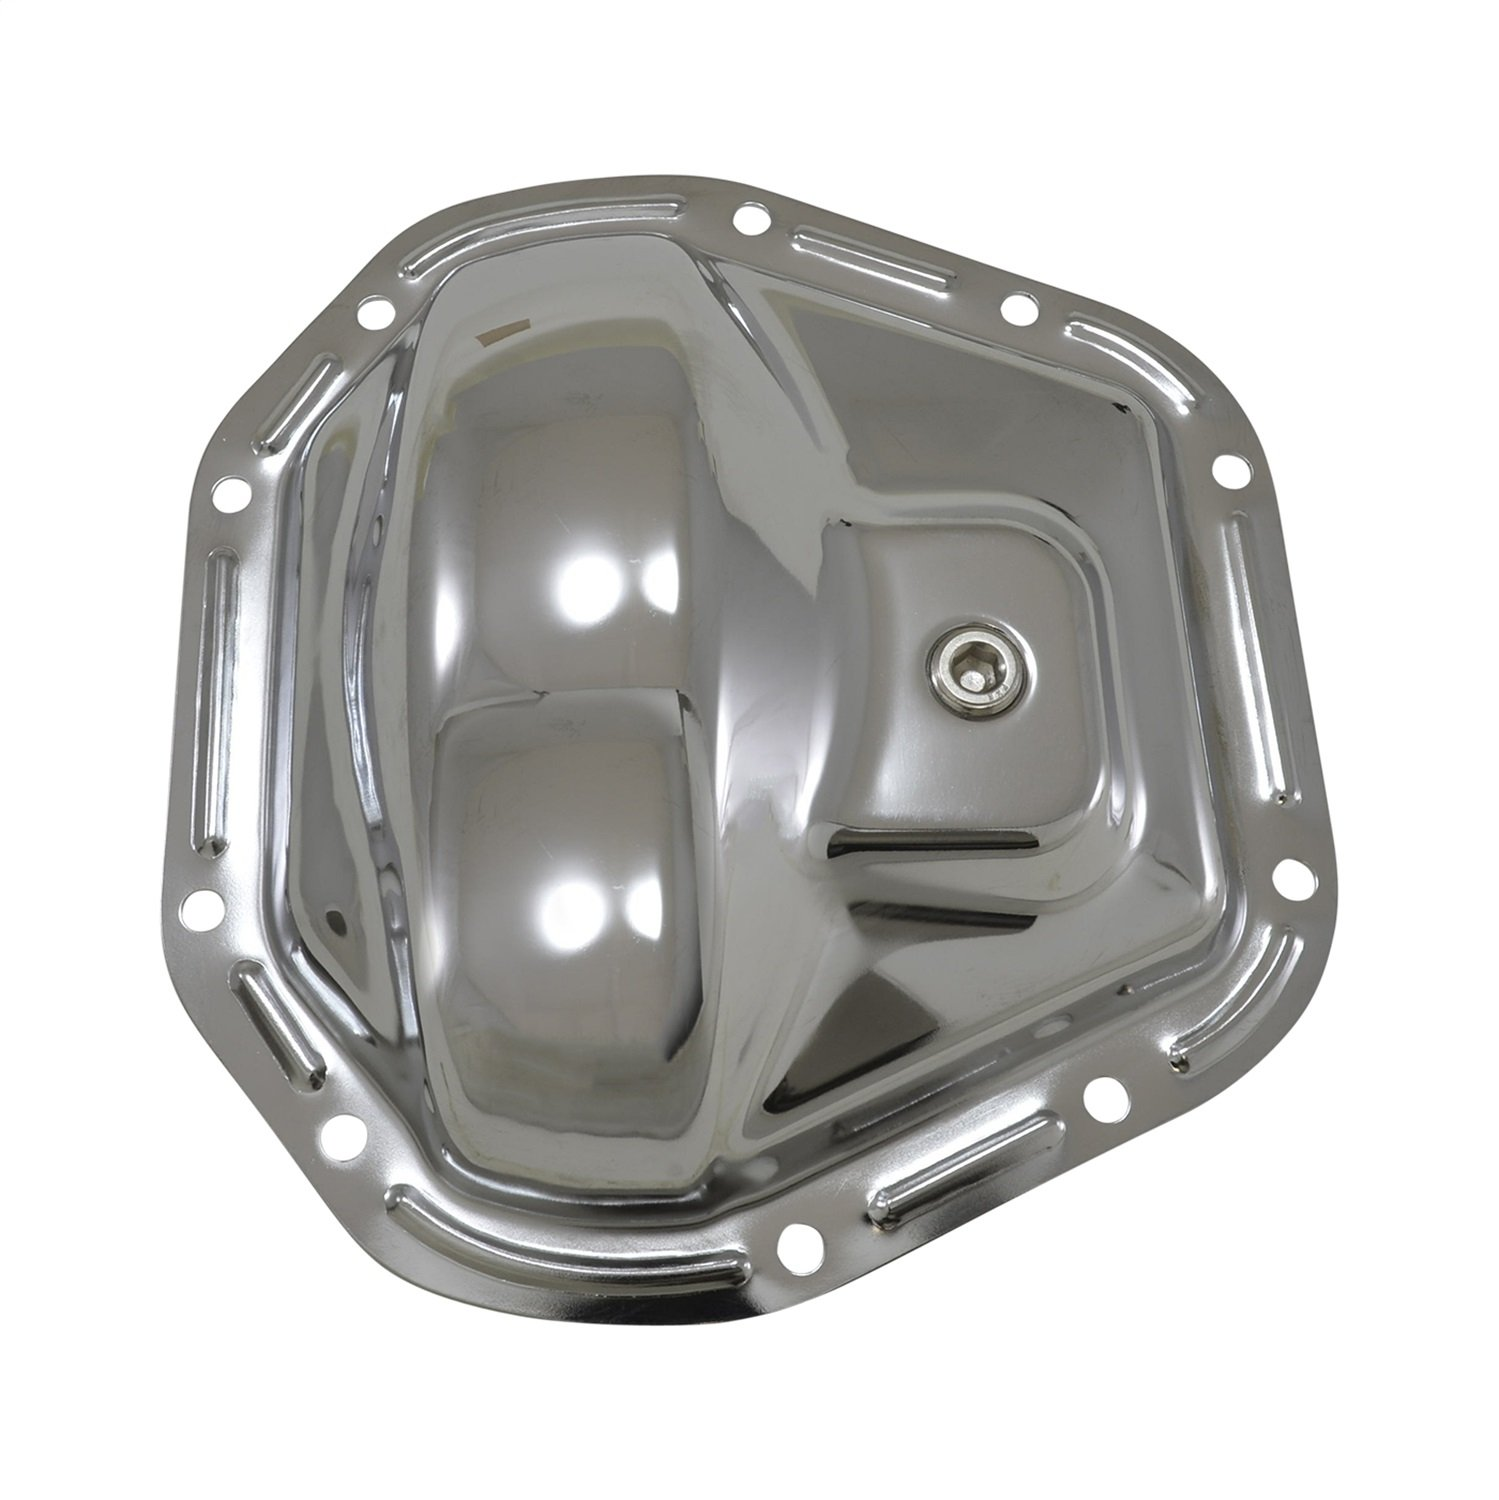 Yukon (YP C1-D60-STD) Chrome Replacement Cover for Dana 60/61 Standard Rotation Differential Yukon Gear